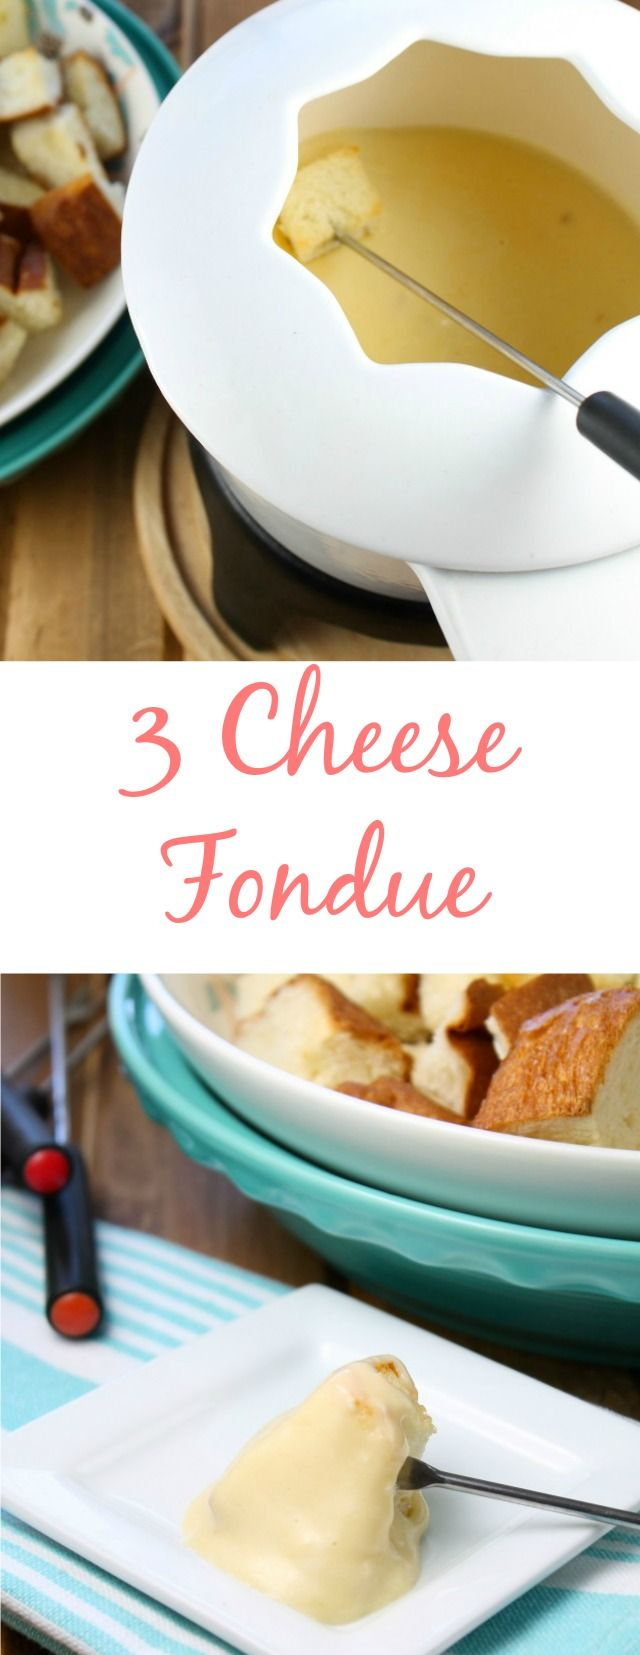 Three Cheese Fondue ~ recipe found at missinthekitchen.com #meatfonduerecipes